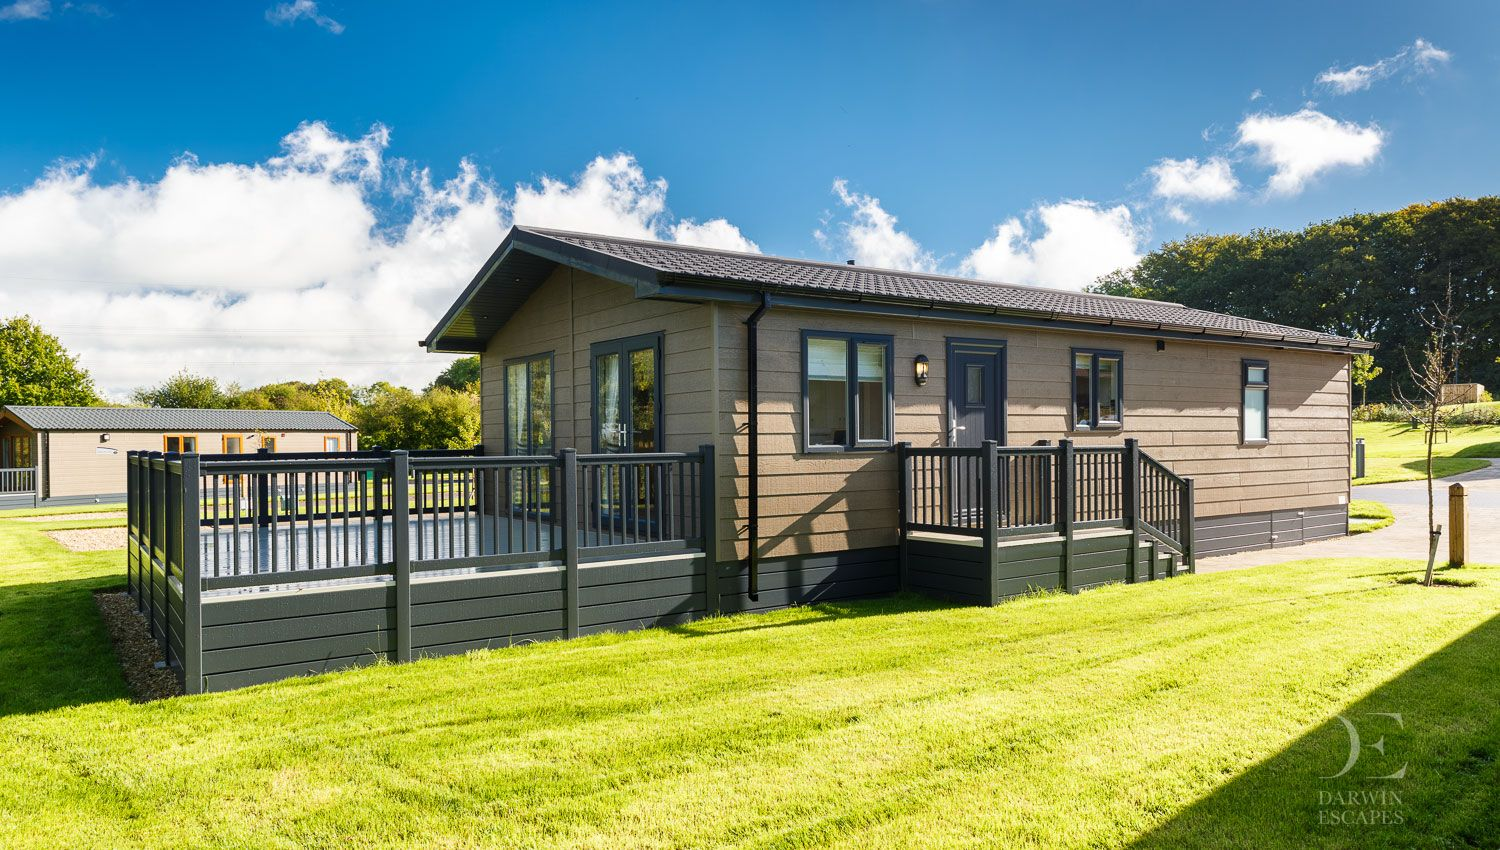 Holiday homes for sale in Scotland. a holiday home